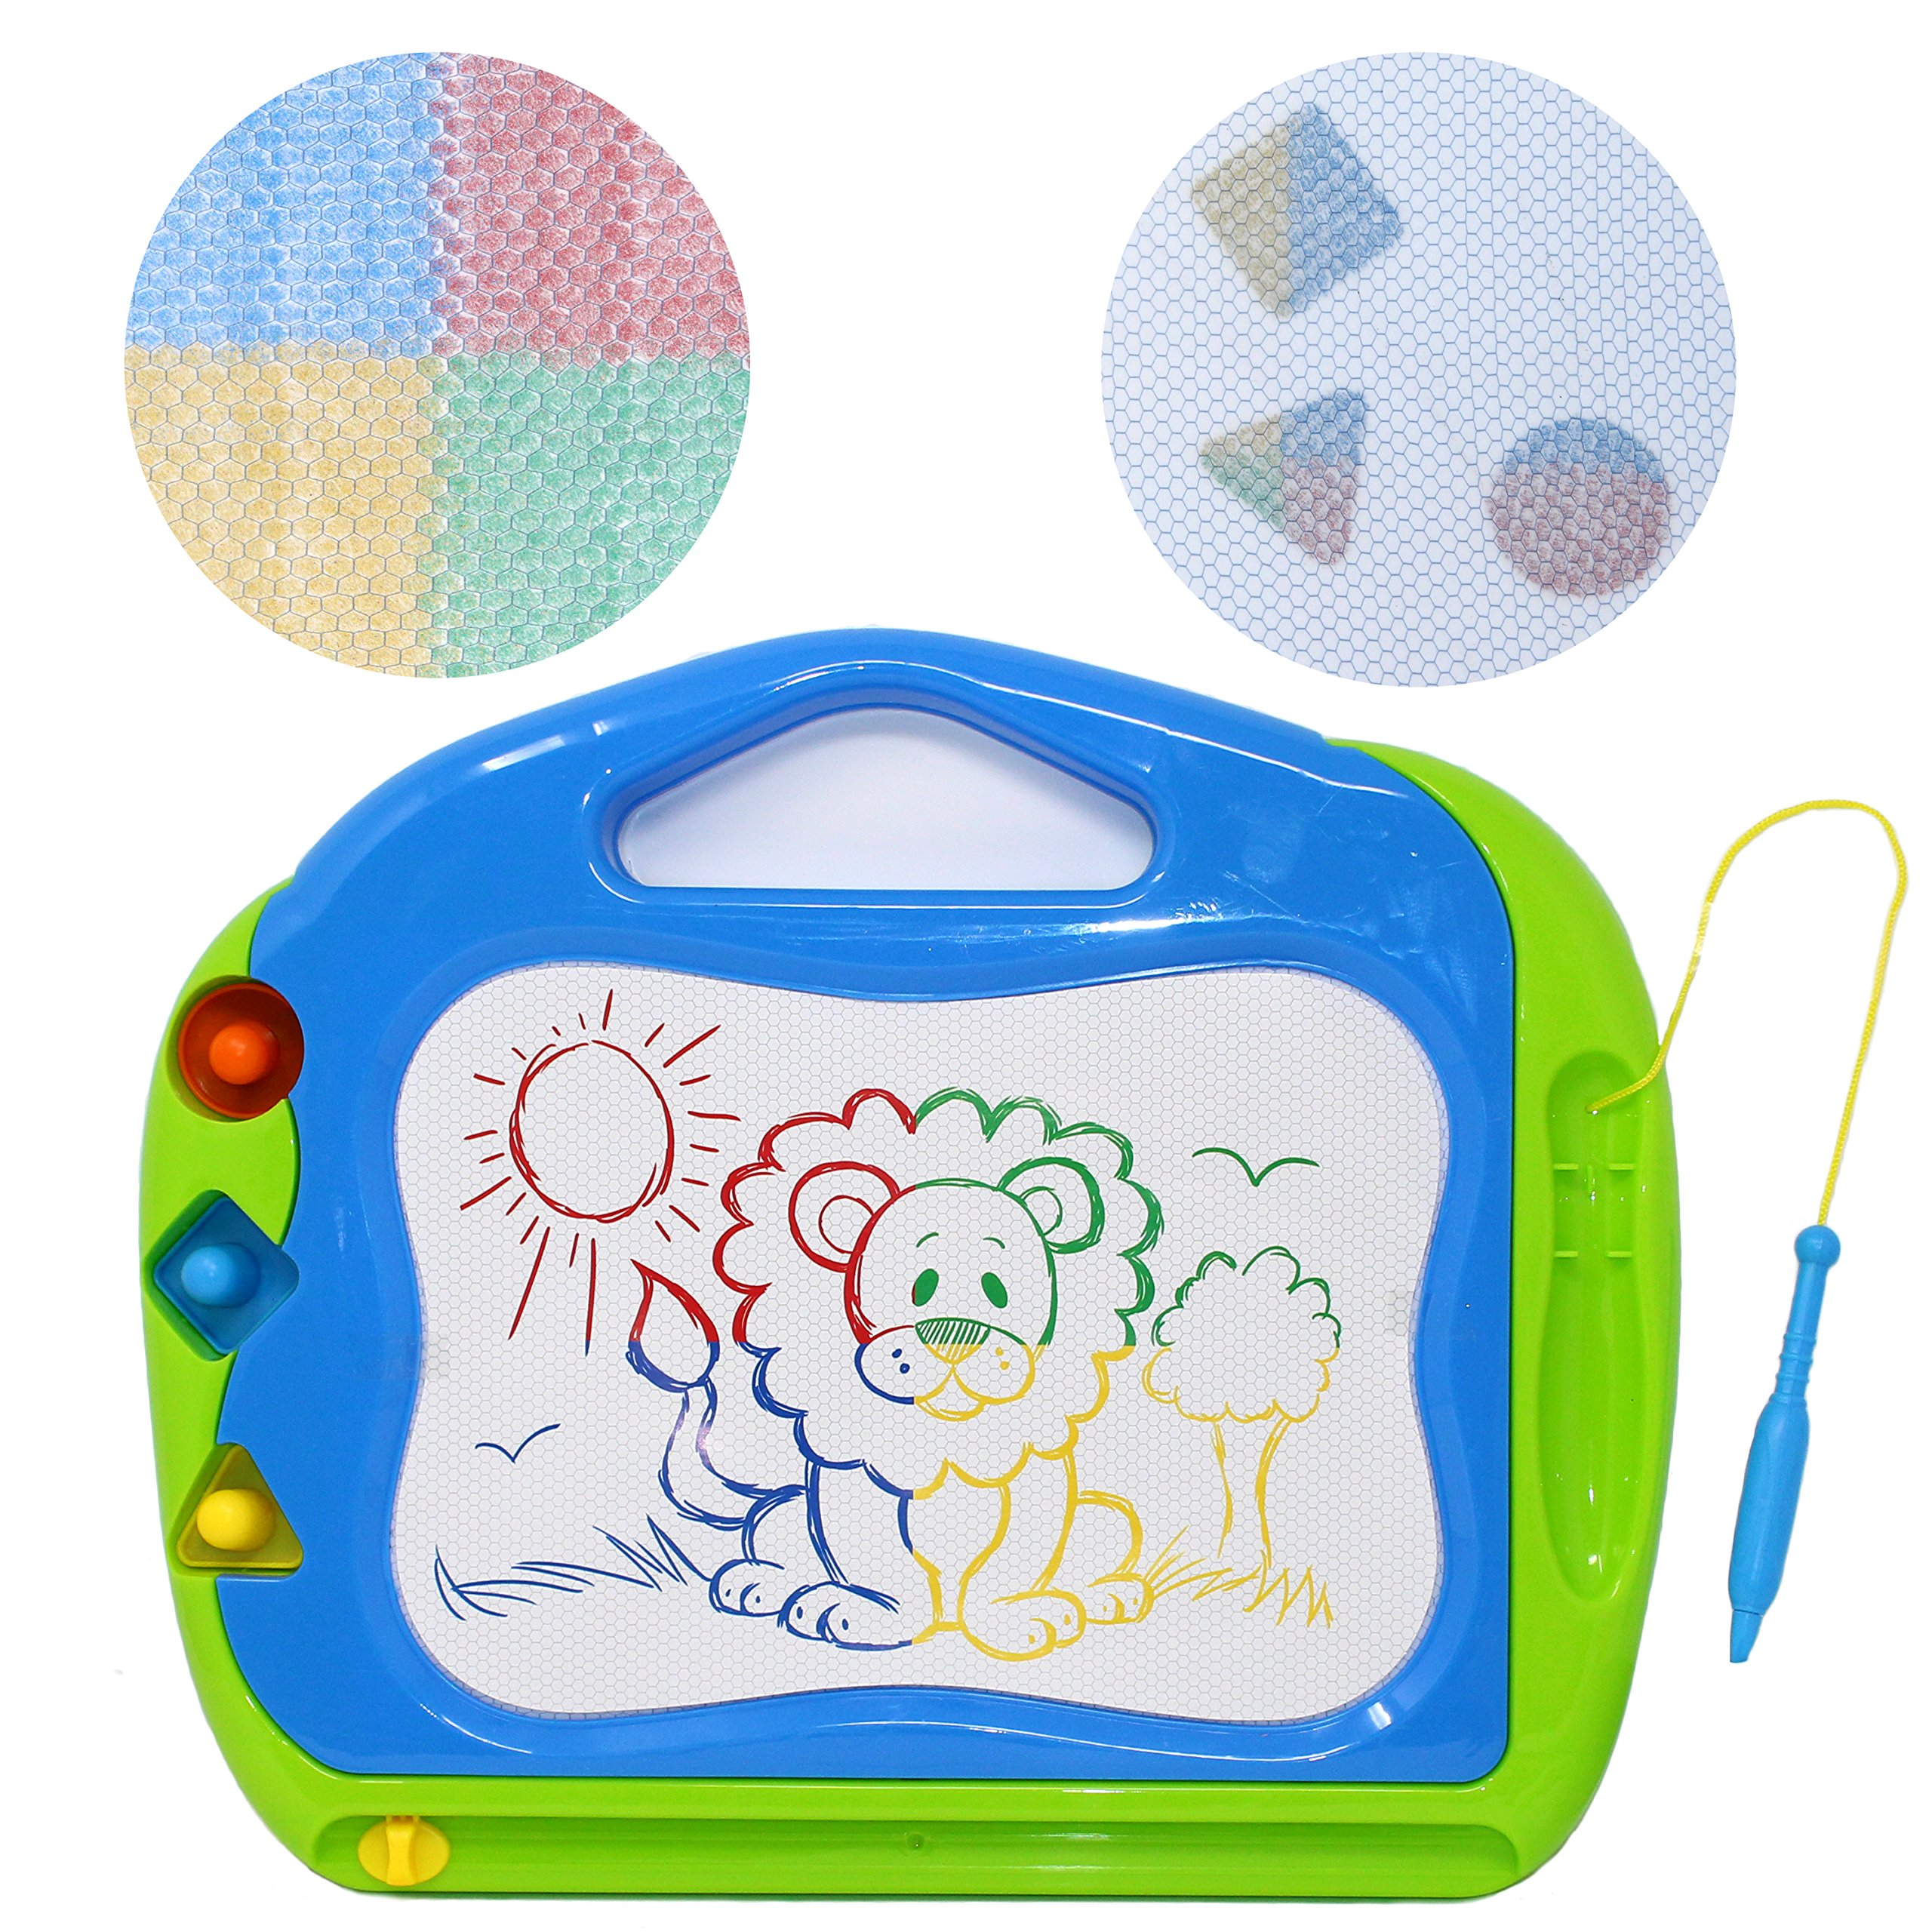 JOYIN 2 Magnetic Drawing Boards with Multi-Colors Drawing Screens Erasable Doodle Sketch Magna Board for Writing, Sketching, Travel Size Gaming Pad, Educational Learning and Classroom Prizes. by JOYIN (Image #3)